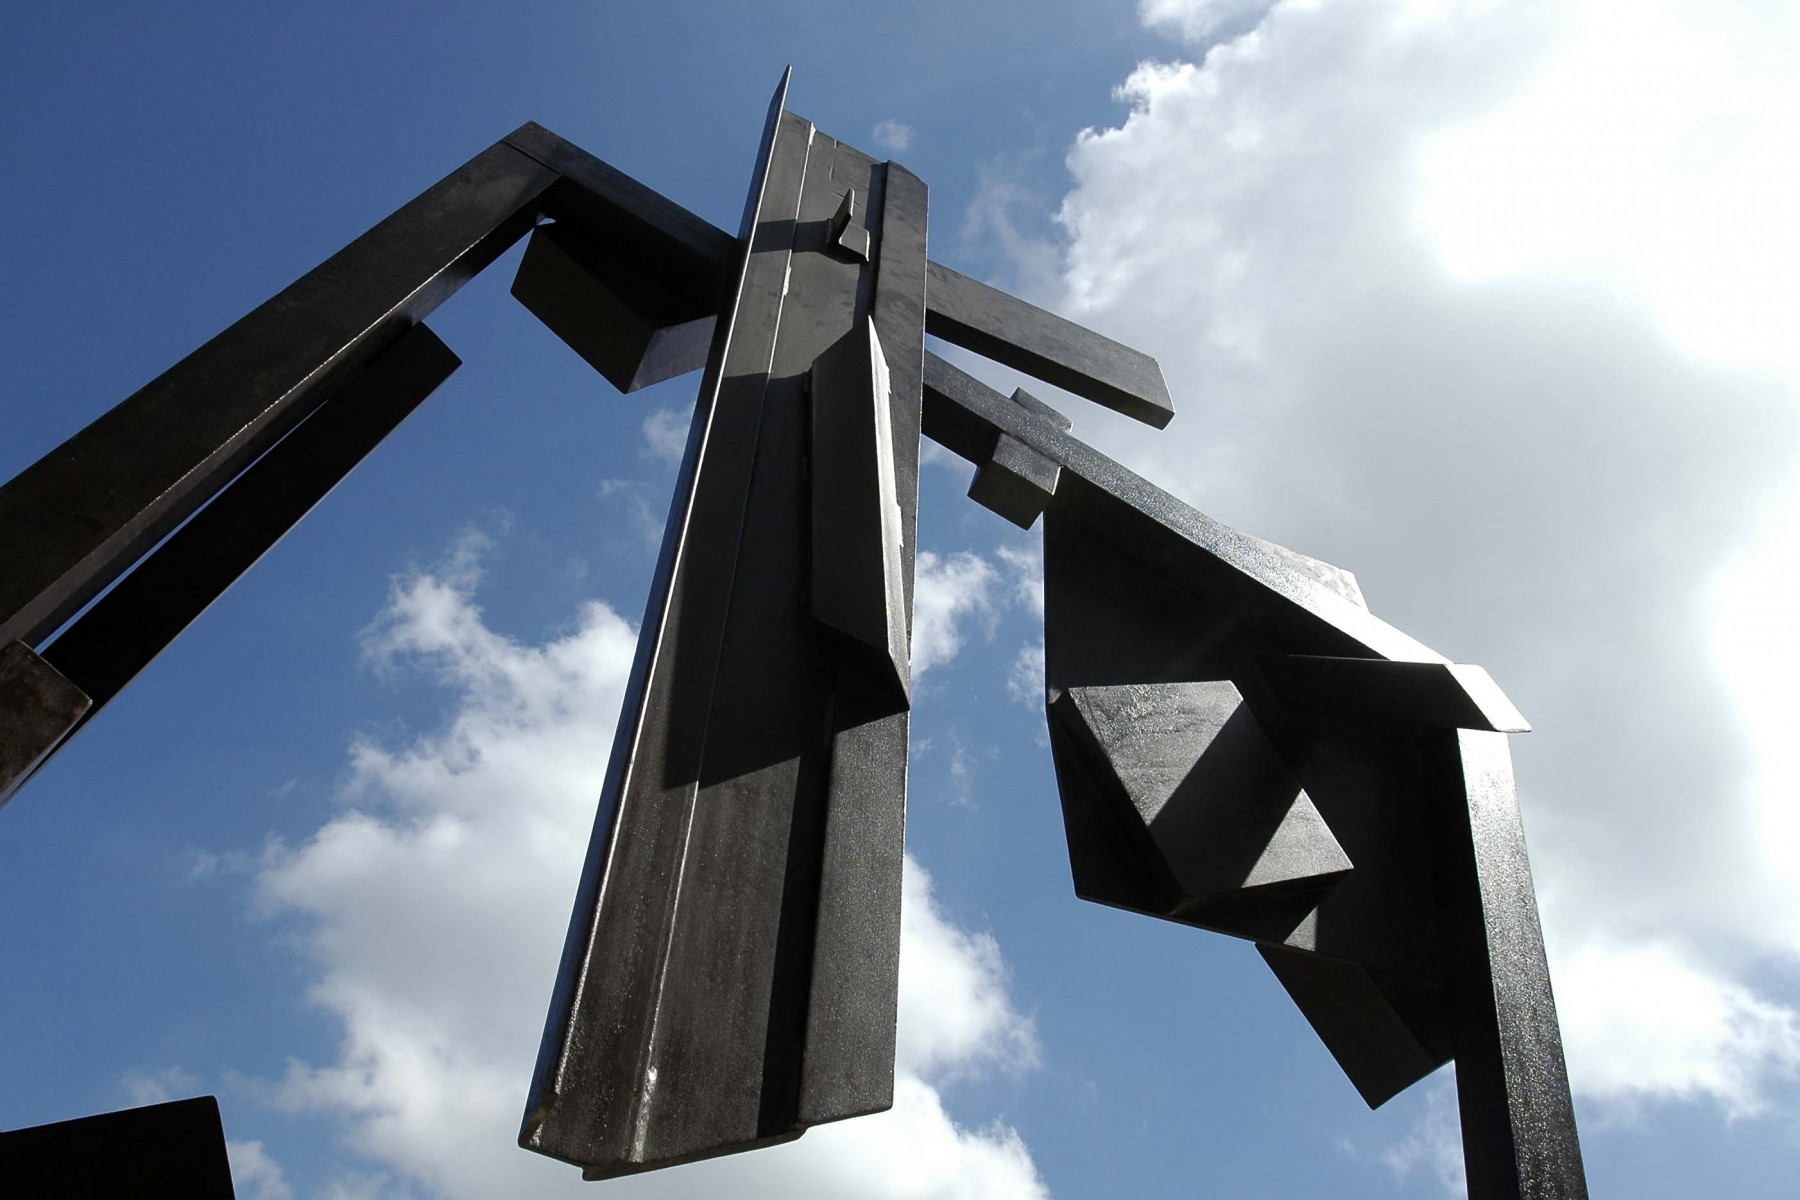 A view looking up at sculpture of steel with blue sky in background